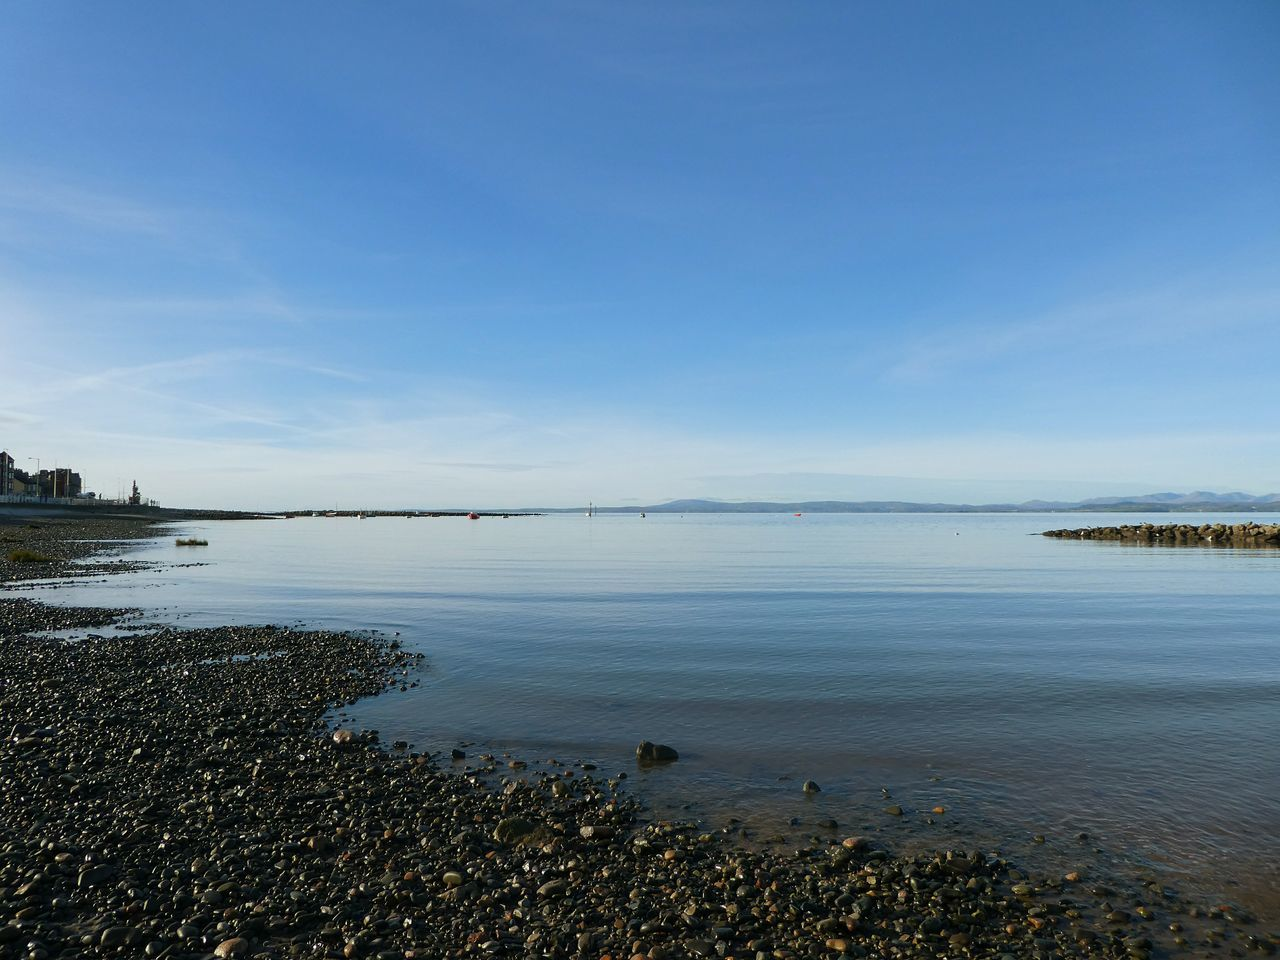 Another day at the seaside...flat calm peace and trsnquility. Sea Water Horizon Over Water Outdoors Nature Scenics Beauty In Nature Sky Tranquil Scene Beach Pebbles And Stones Blue Skies Calm No Wind Tranquility No People Day Keepitsimple Rippled Water Blue Picsartrefugees Bay Distant Mountains Simple Quiet Love